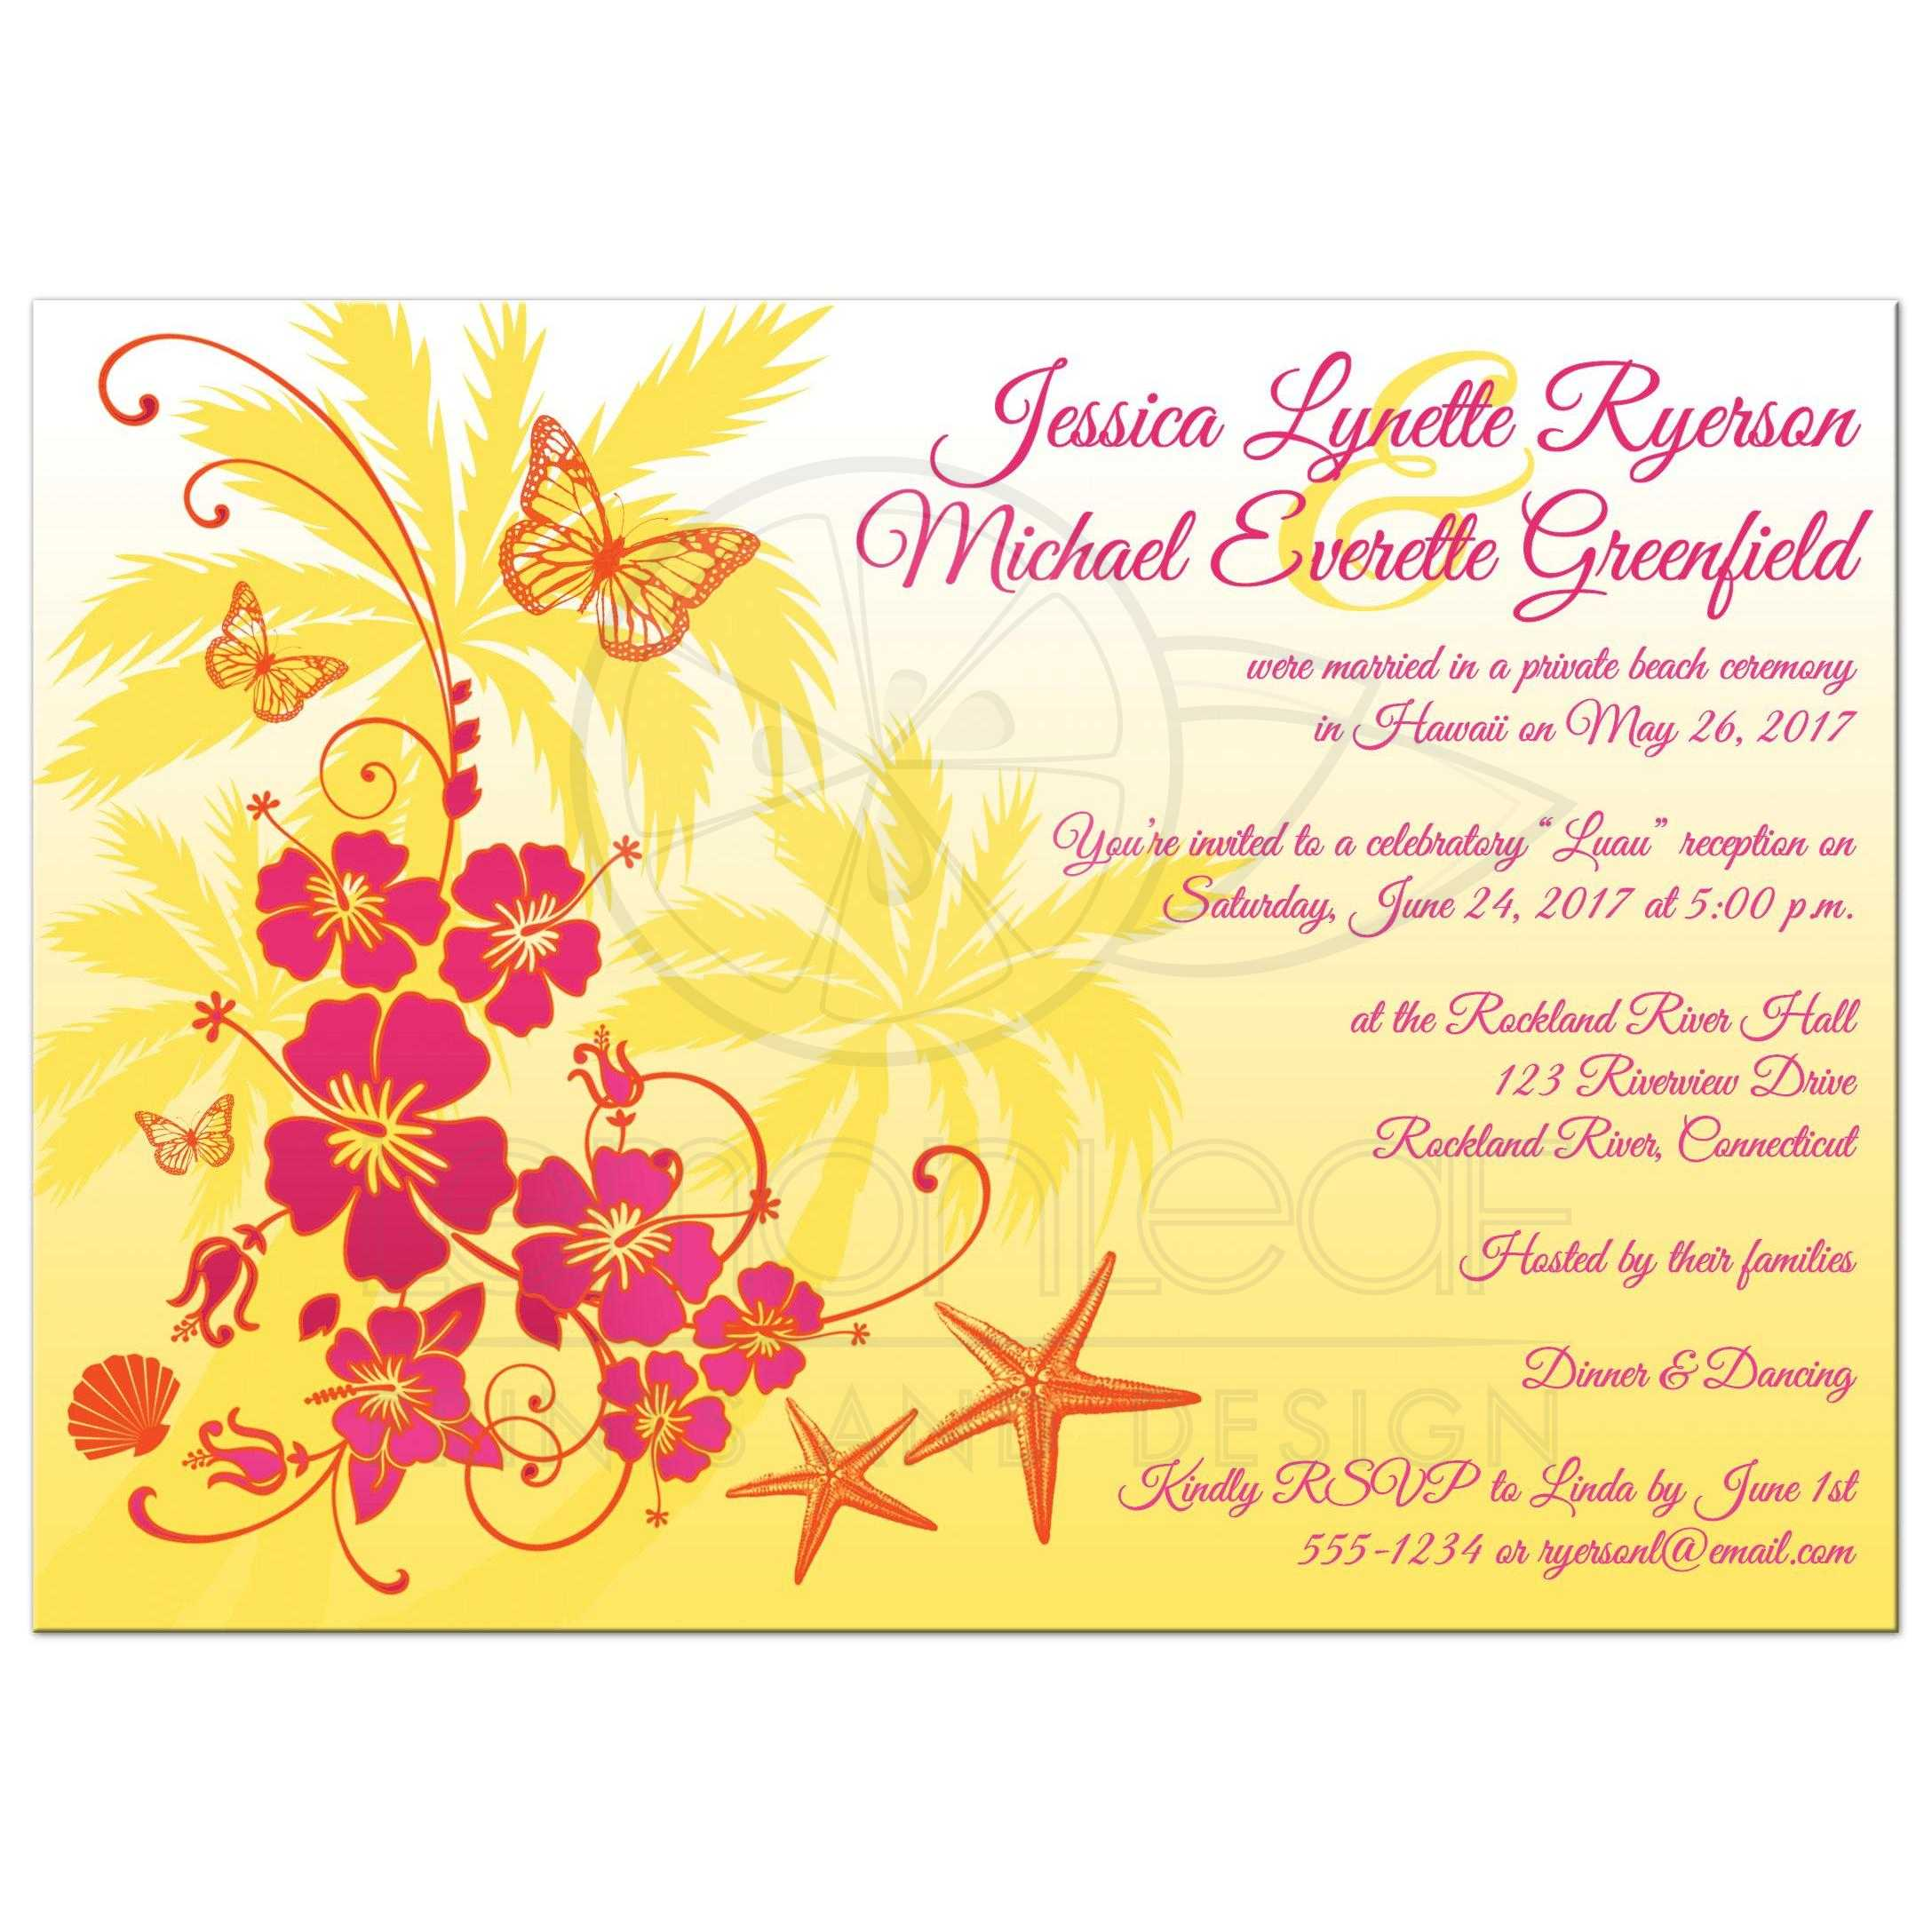 Cool wedding invitations for the ceremony: Pink yellow orange ...